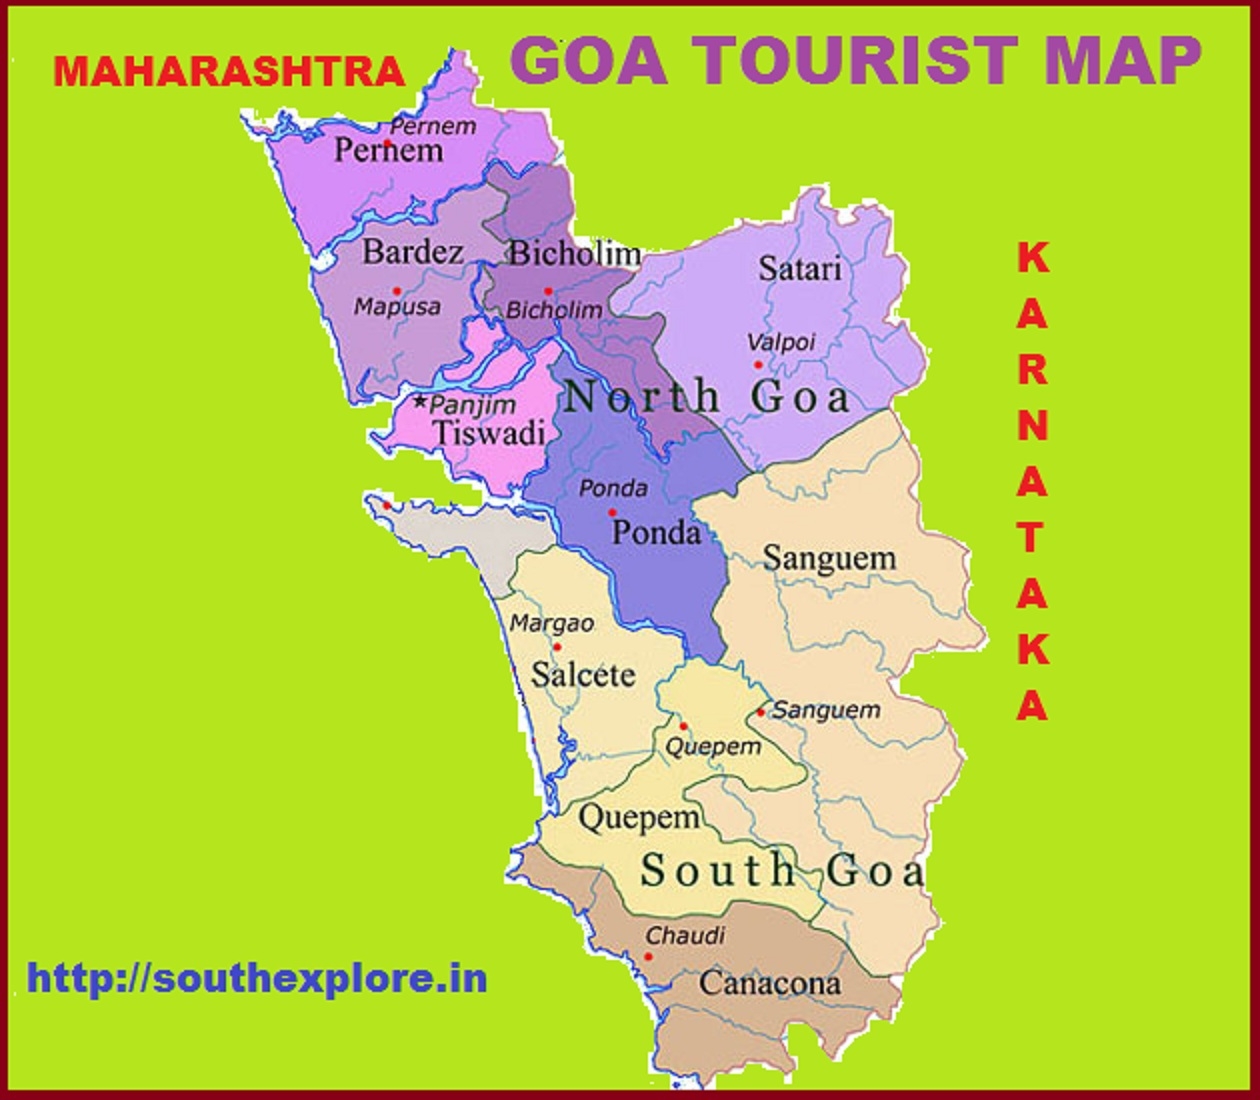 goa map tourism tourist india south attractions inquisition hindus christian missionaries were